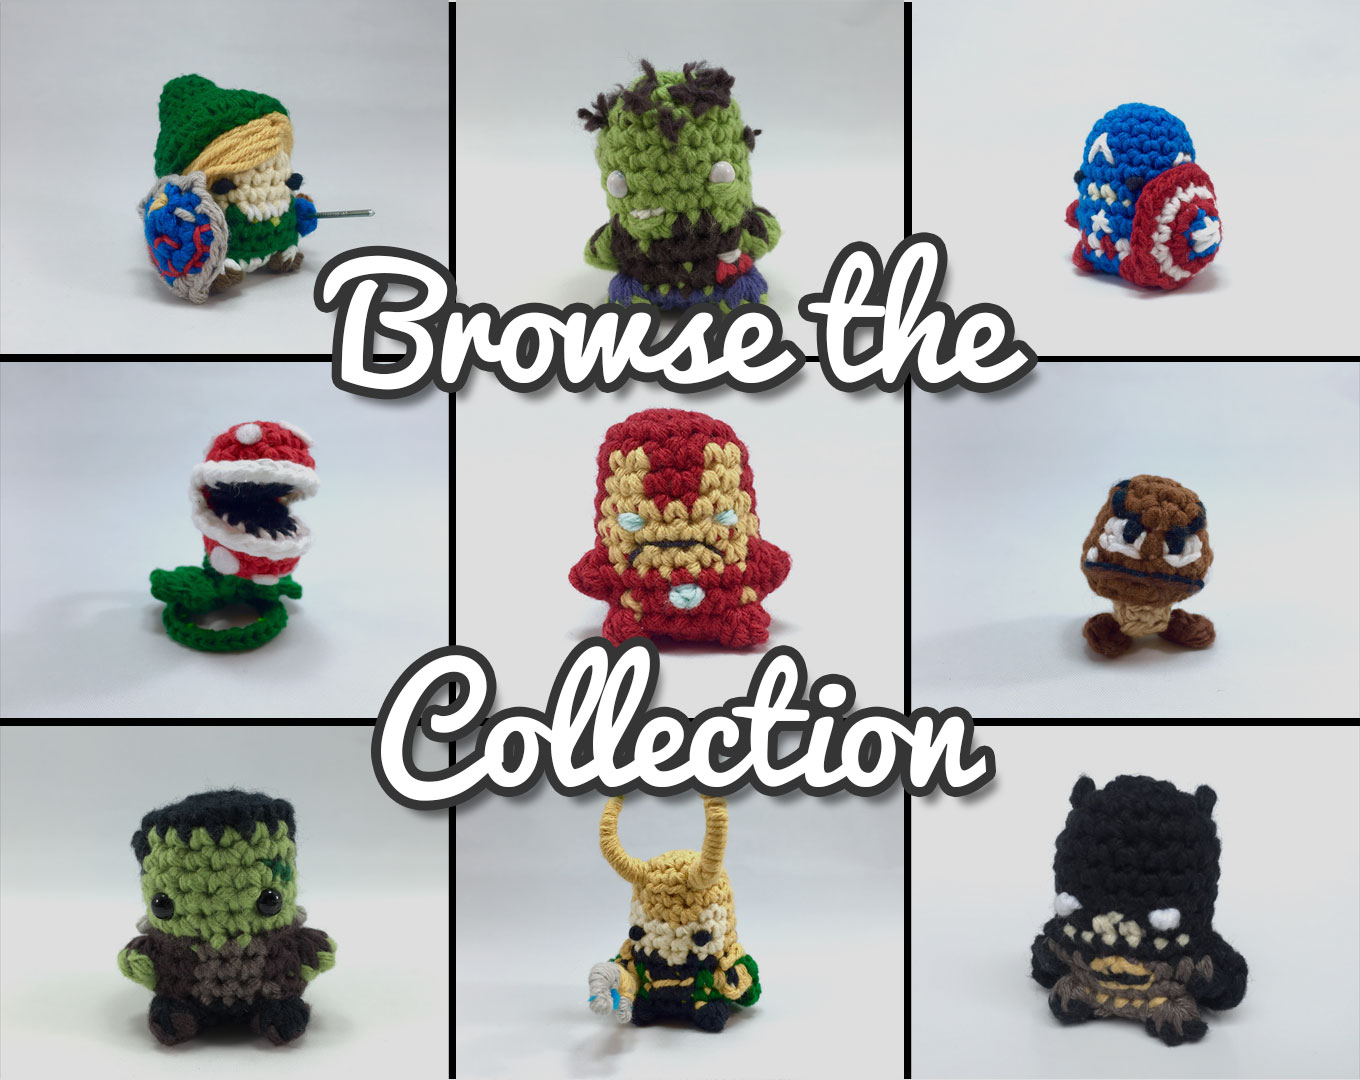 Browse-the-collection